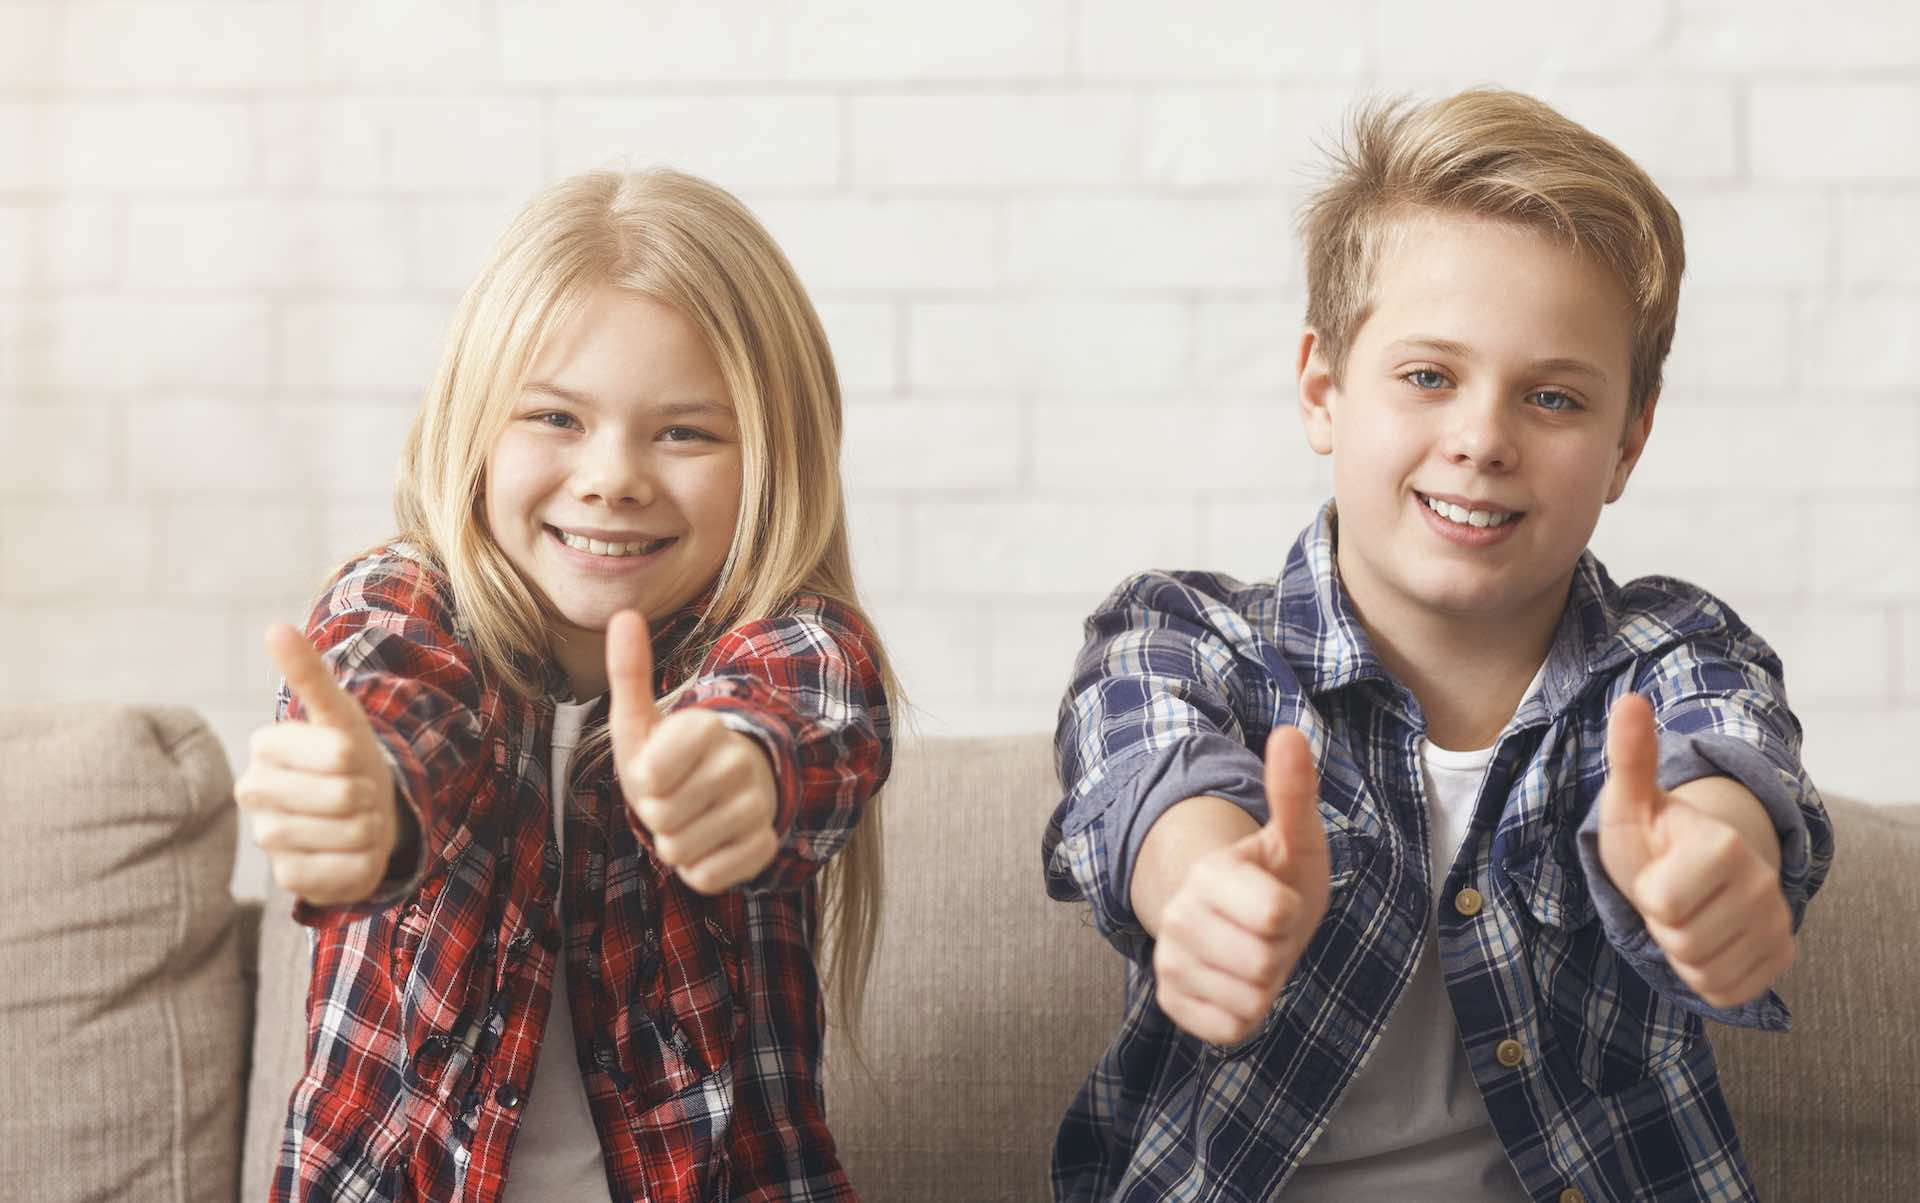 Cheerful Brother And Sister Siblings Gesturing Thumbs Up Smiling To Camera Sitting On Couch At Home. Selective Focus